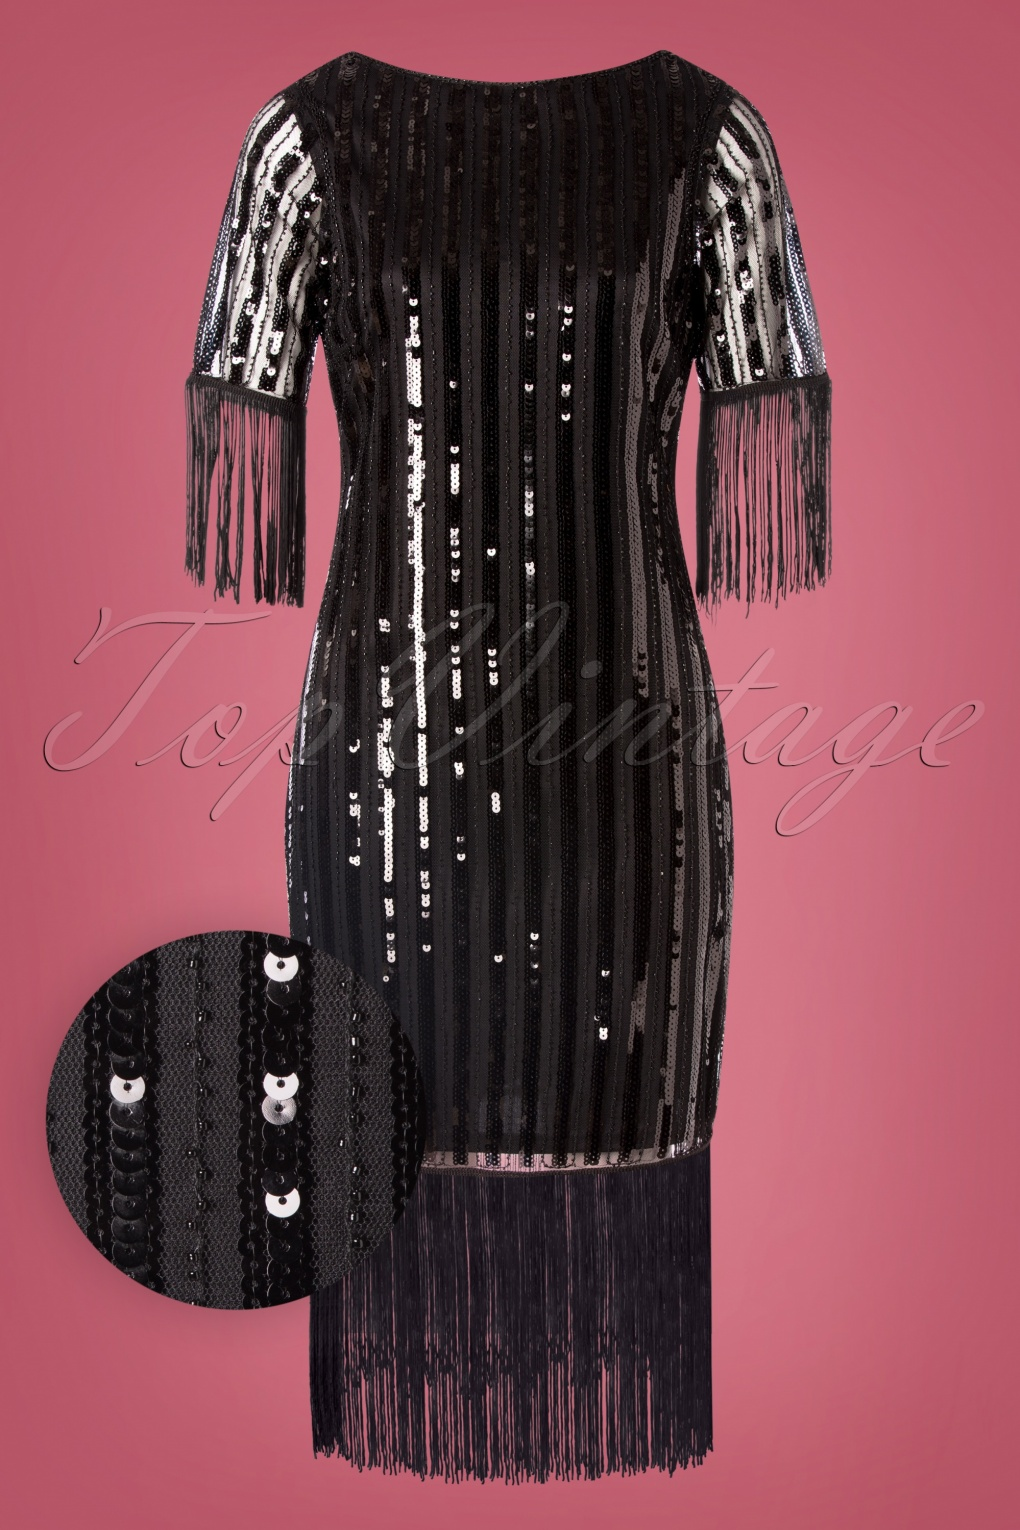 Vintage Inspired Dresses & Clothing UK 20s Marcy Fringe Dress in Black £111.37 AT vintagedancer.com